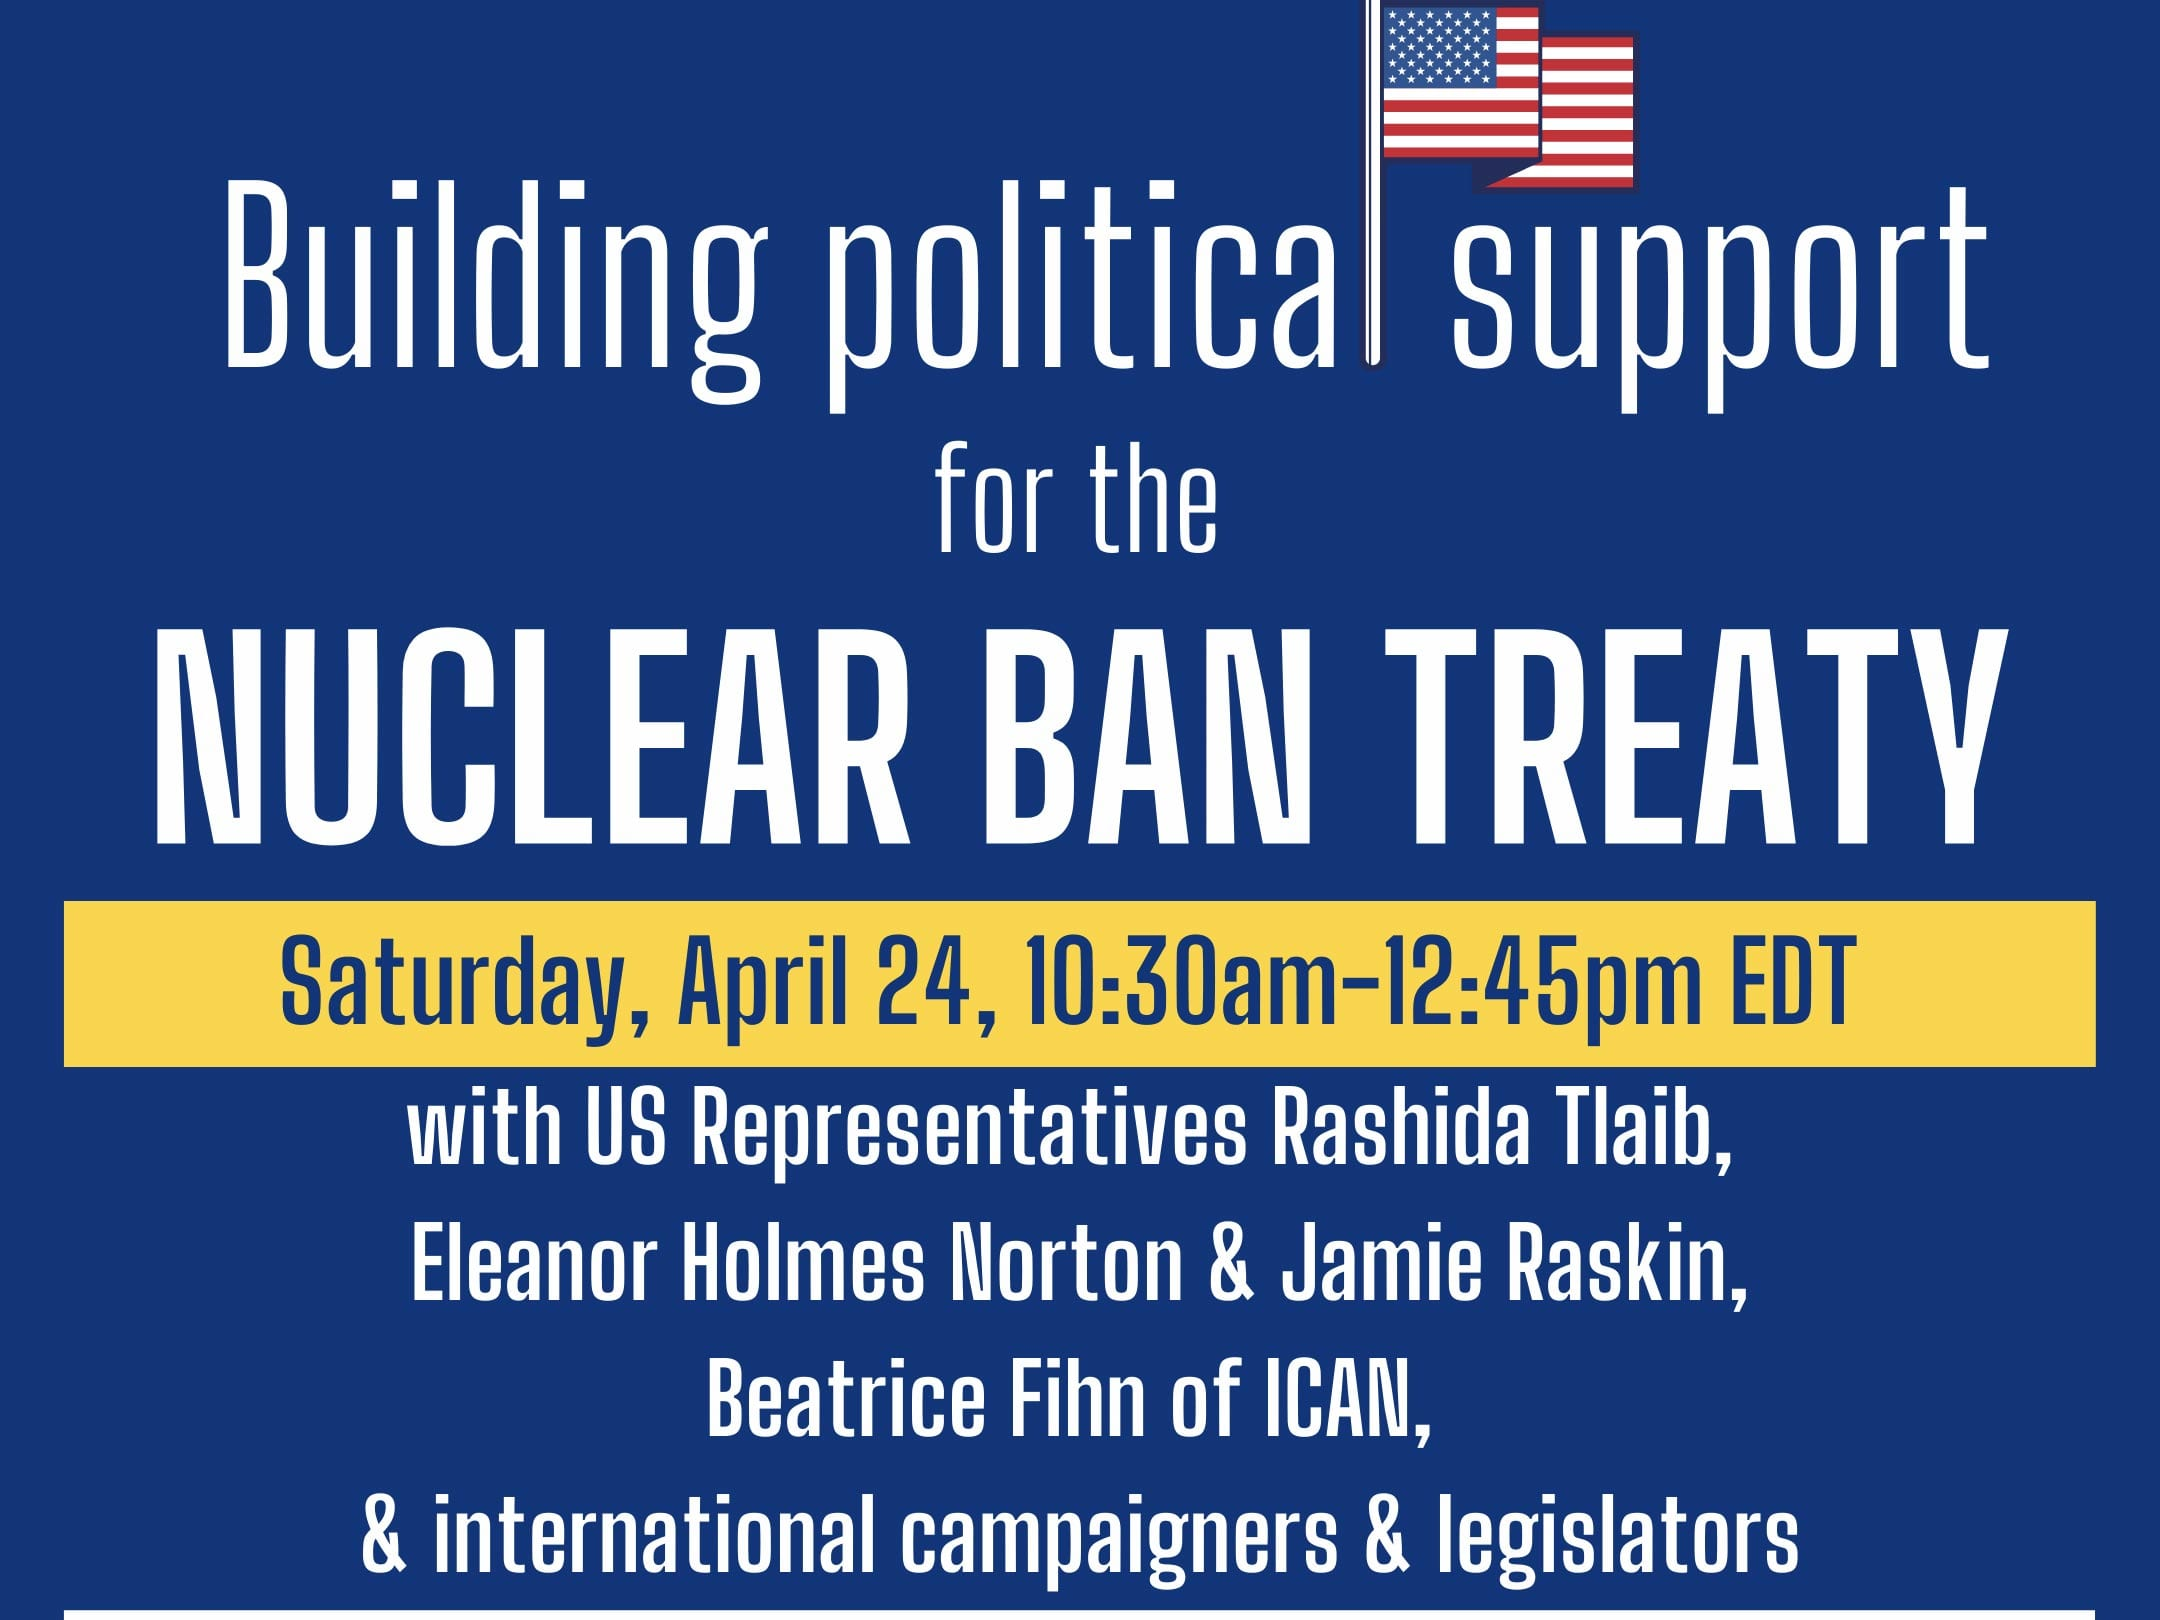 building political support for a nuclear ban treaty